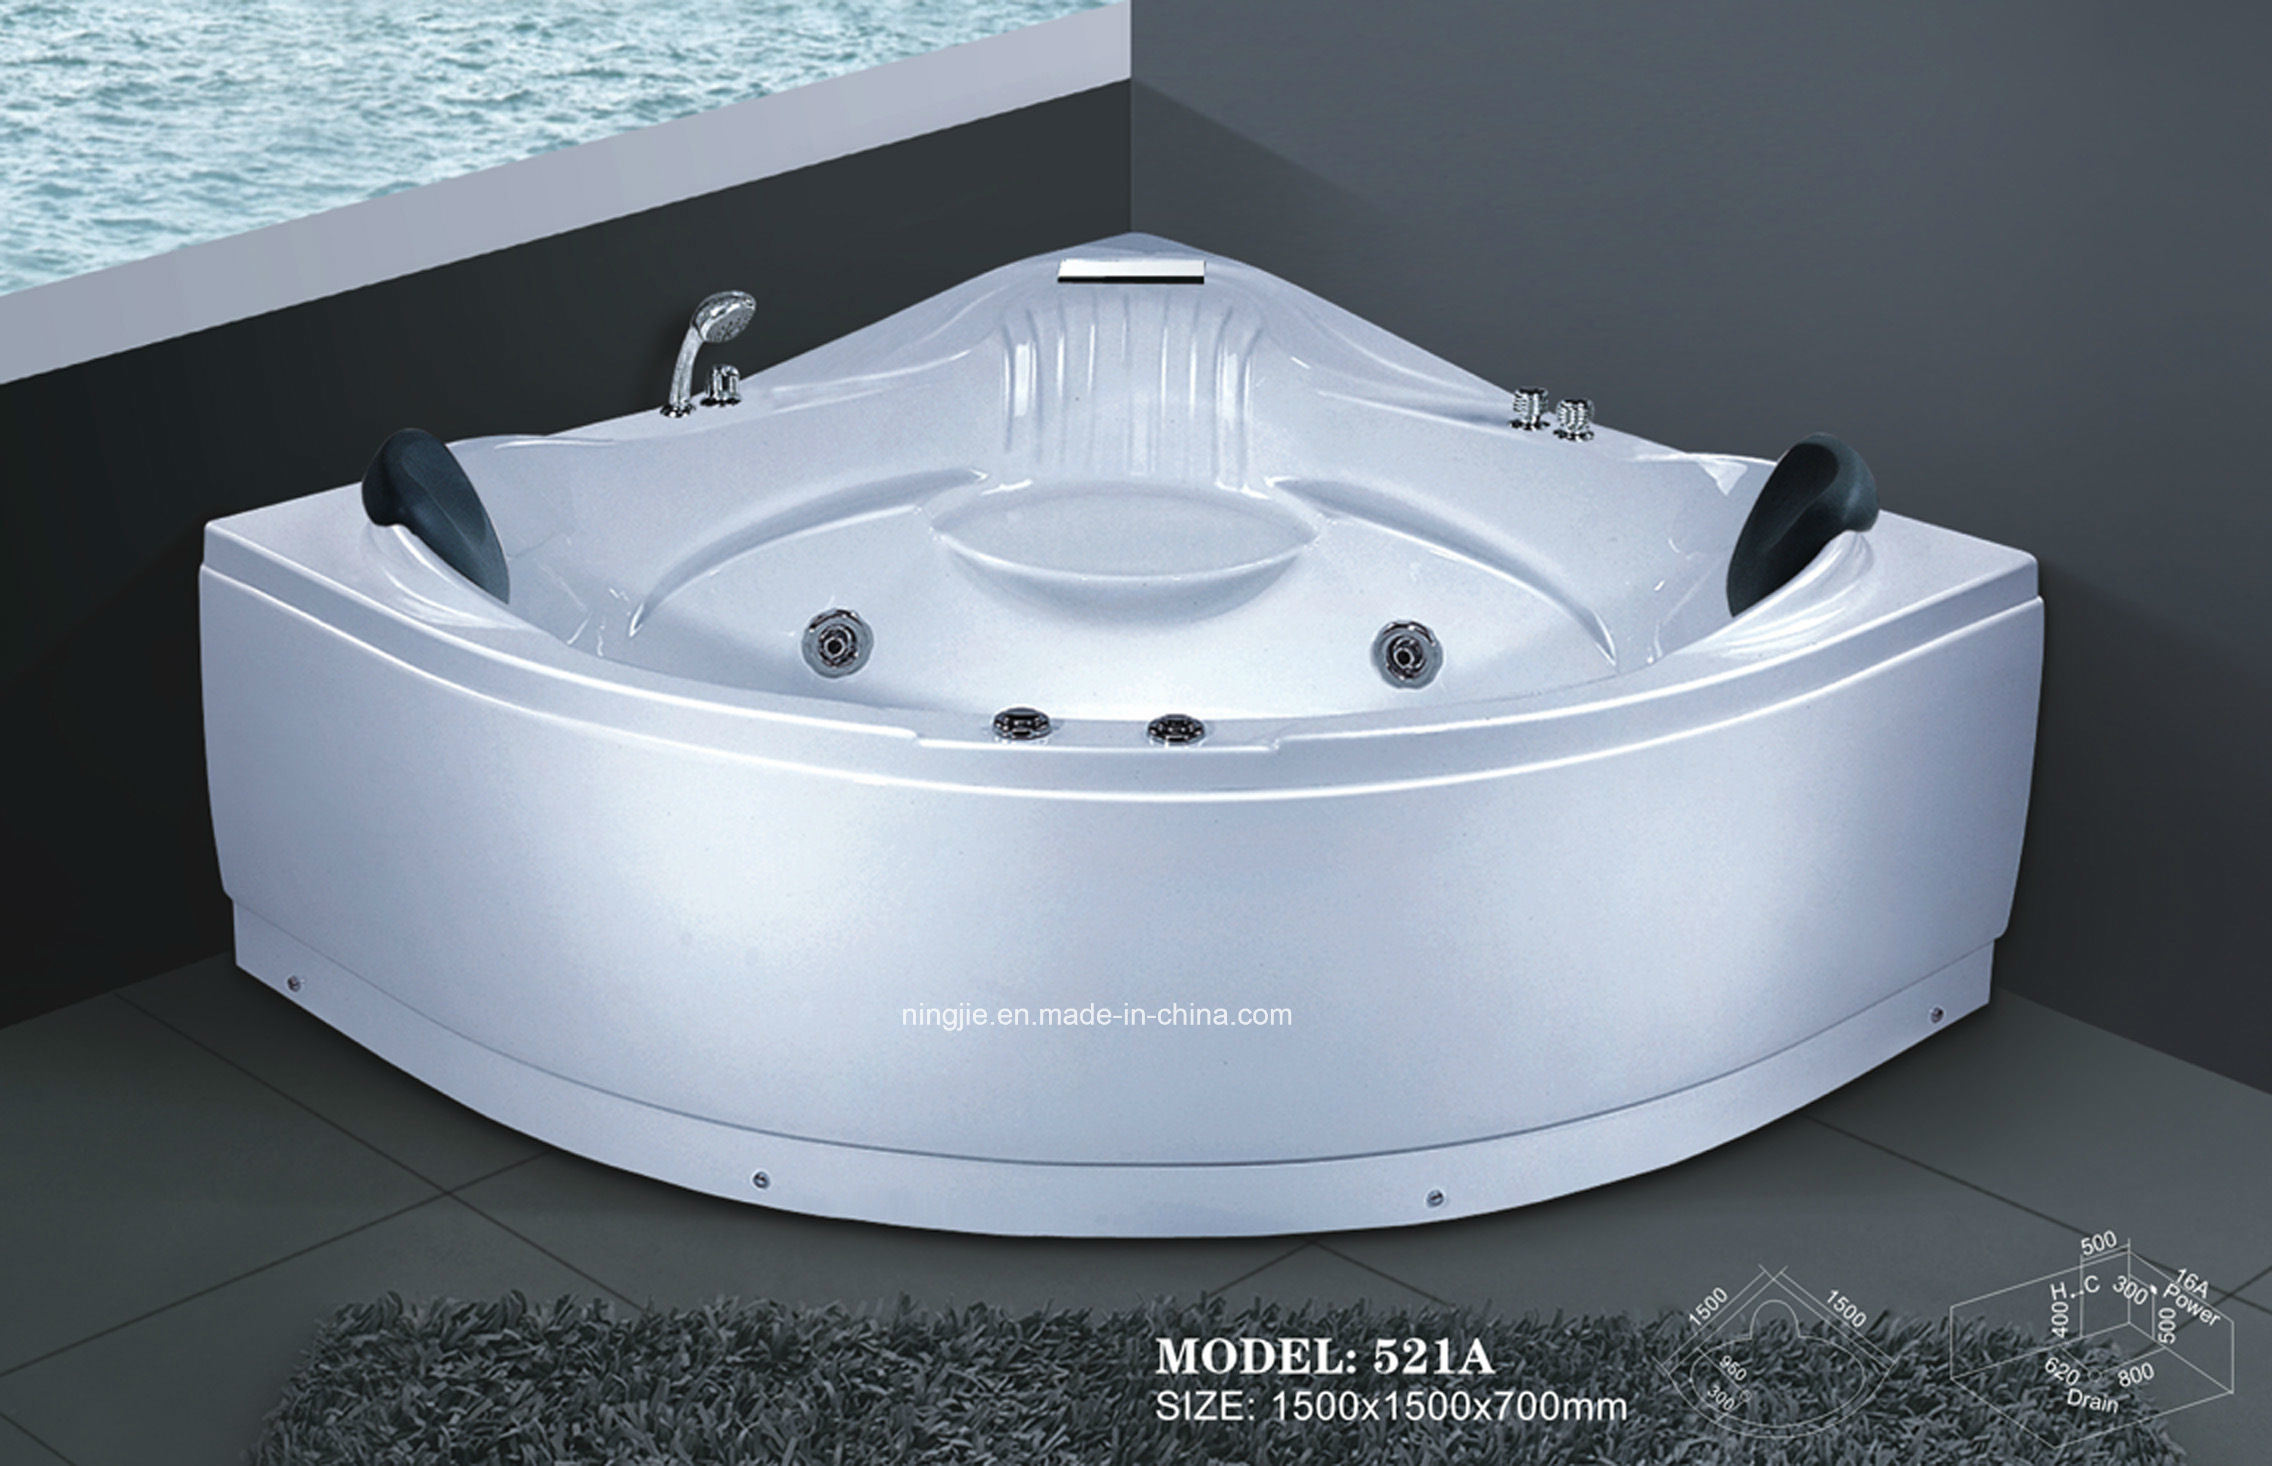 China Ningjie Massage Bathtub and Whirlpool Jacuzzi (521B) Photos ...